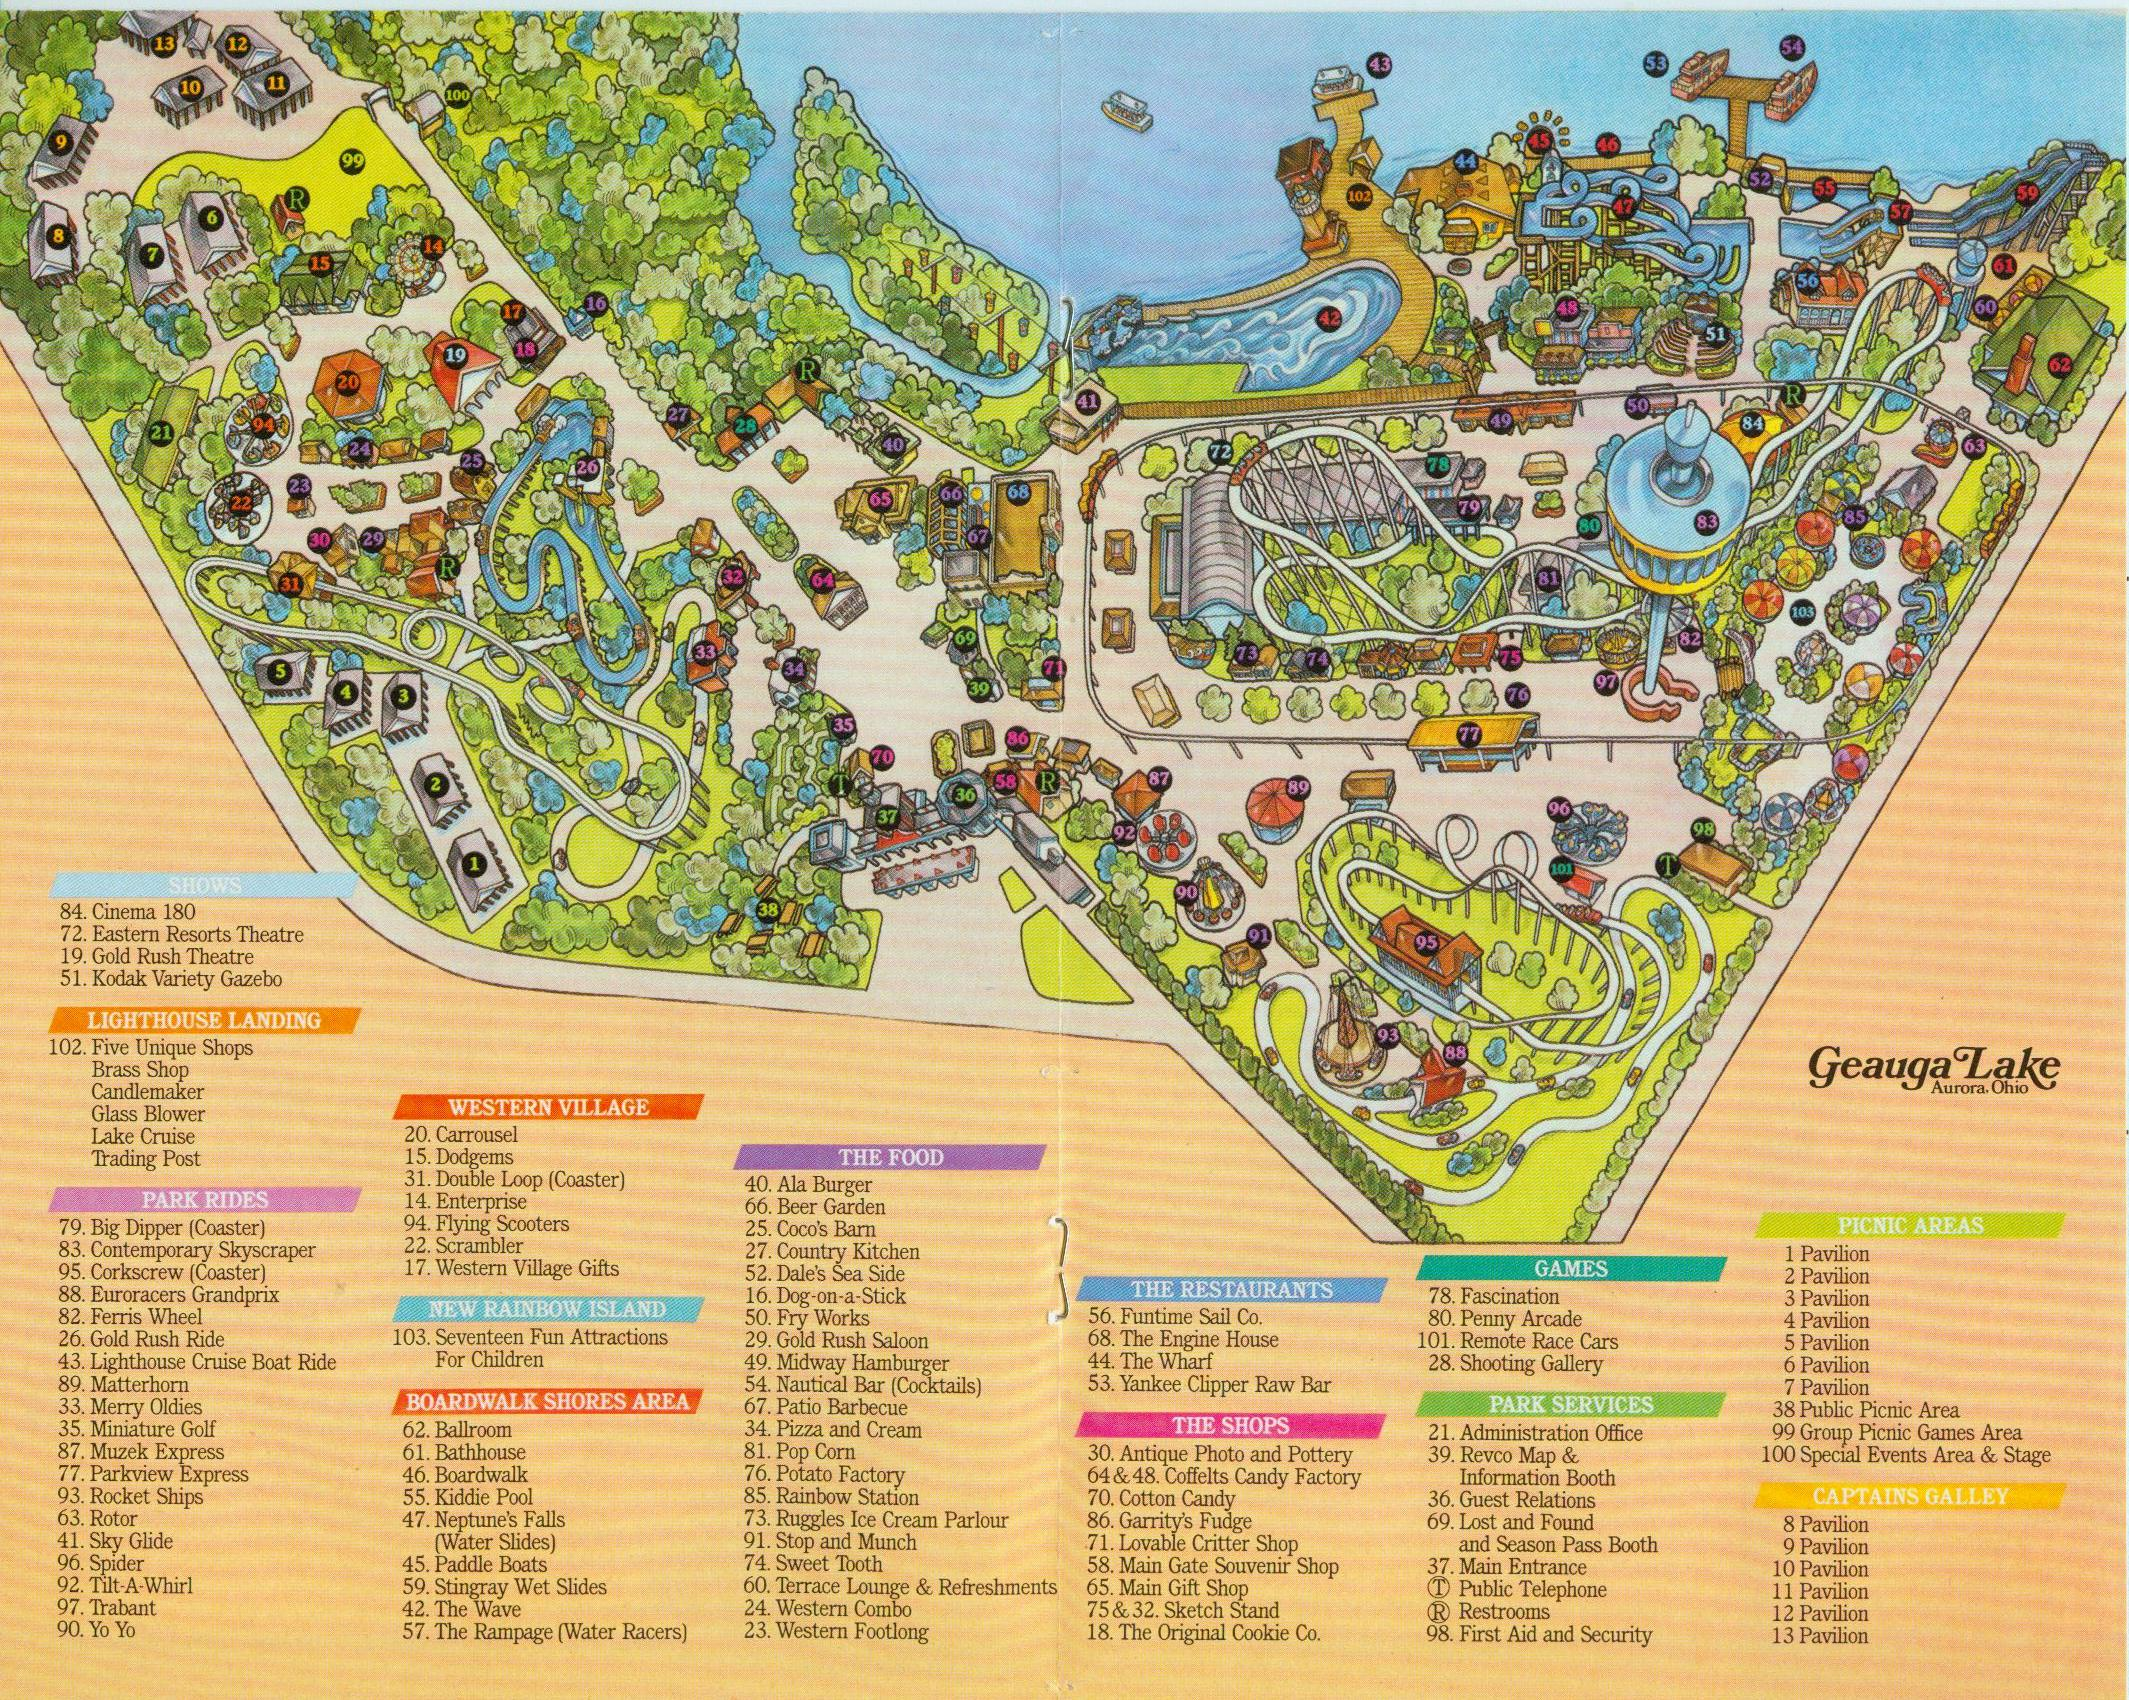 Geauga Lake Maps